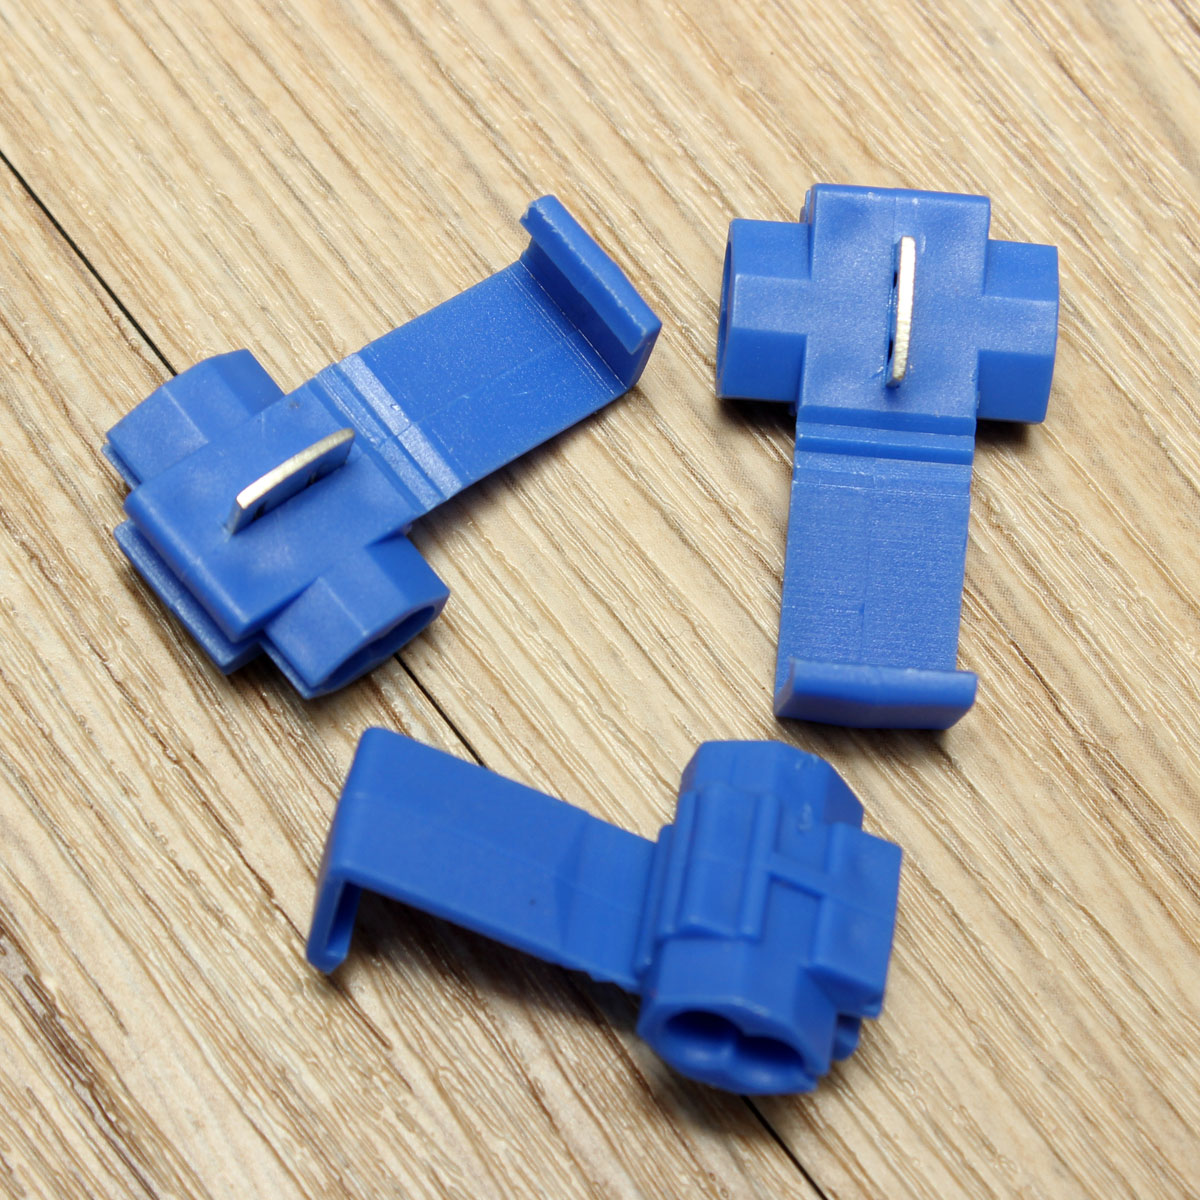 100Pcs Blue Scotch Lock Quick Splice Wire Connector Terminals